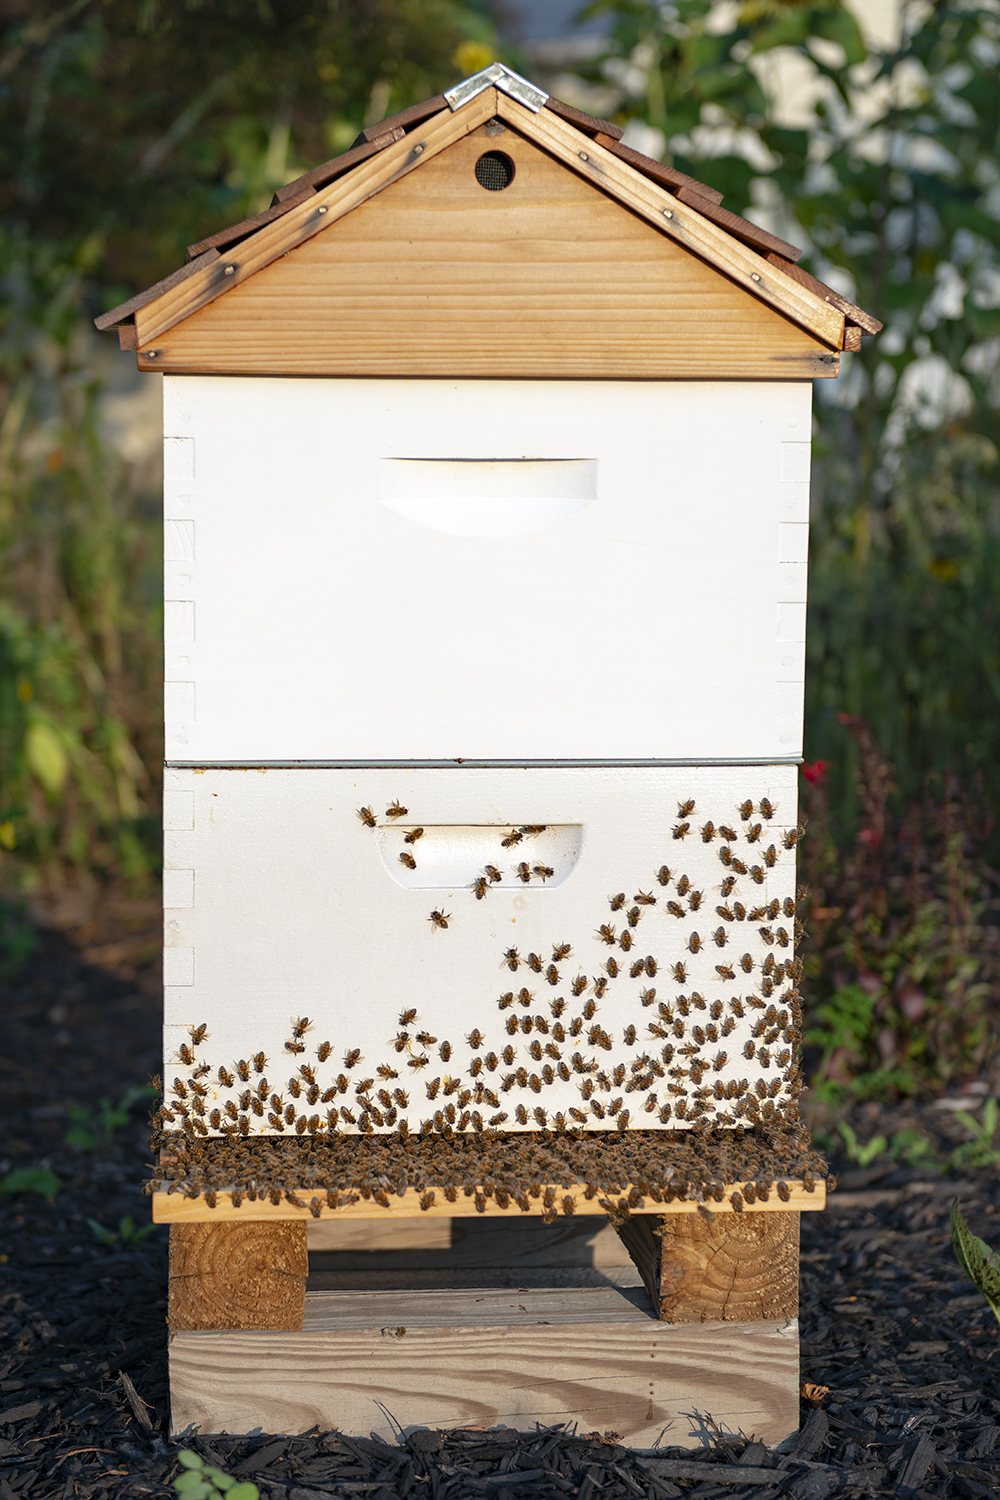 Our second Langstroth hive at FoxTail Farm (Morning, August 8, 2018)